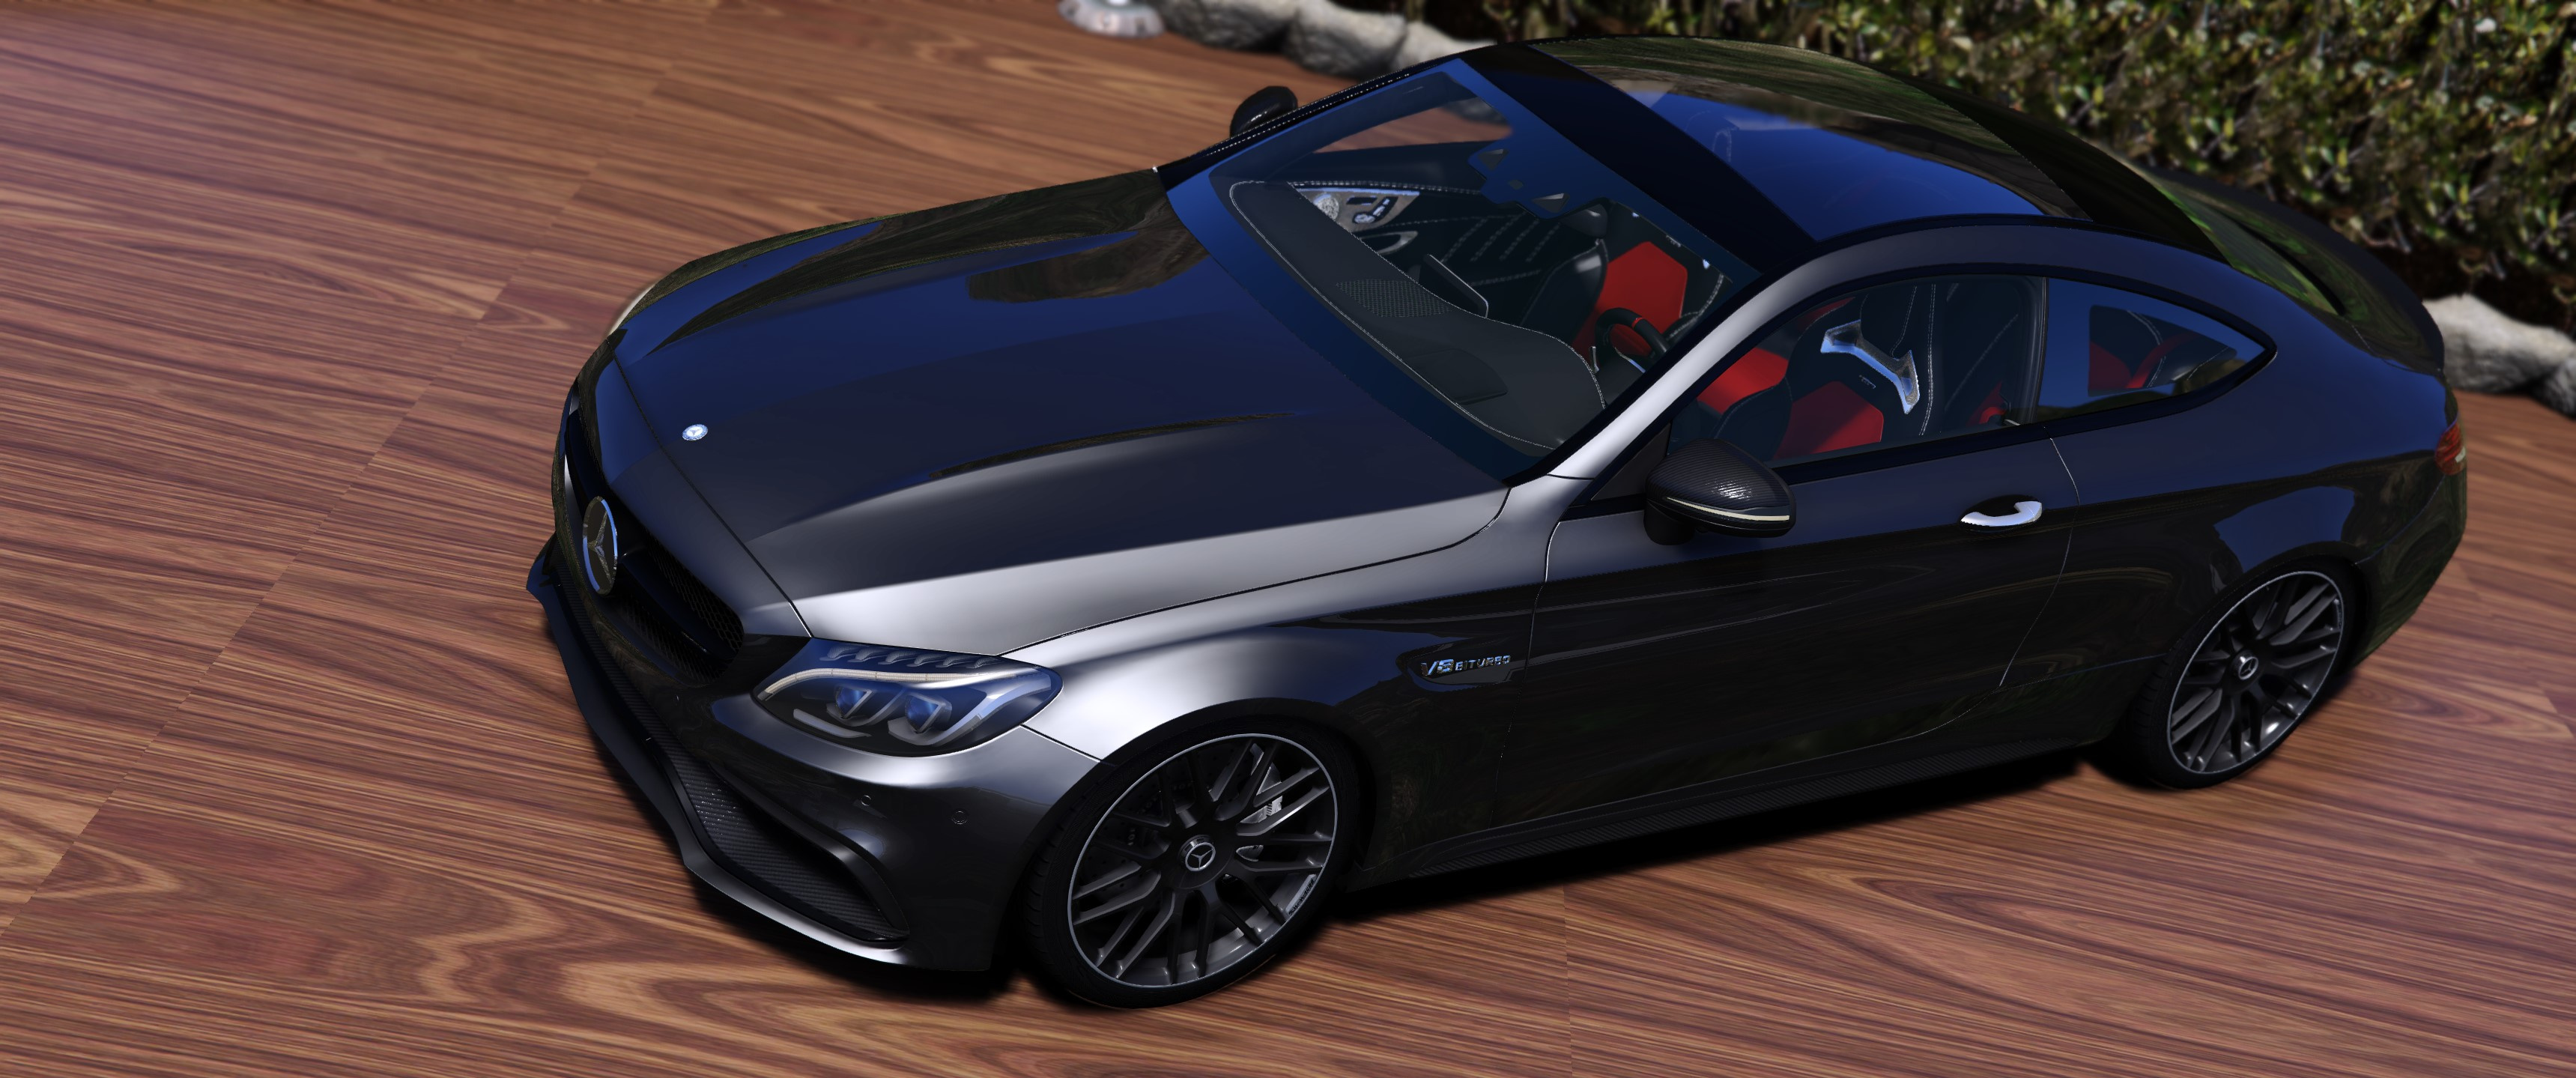 2017 Mercedes Benz C63s Amg Coupe Add On Tuning Template Gta5 Mods Com